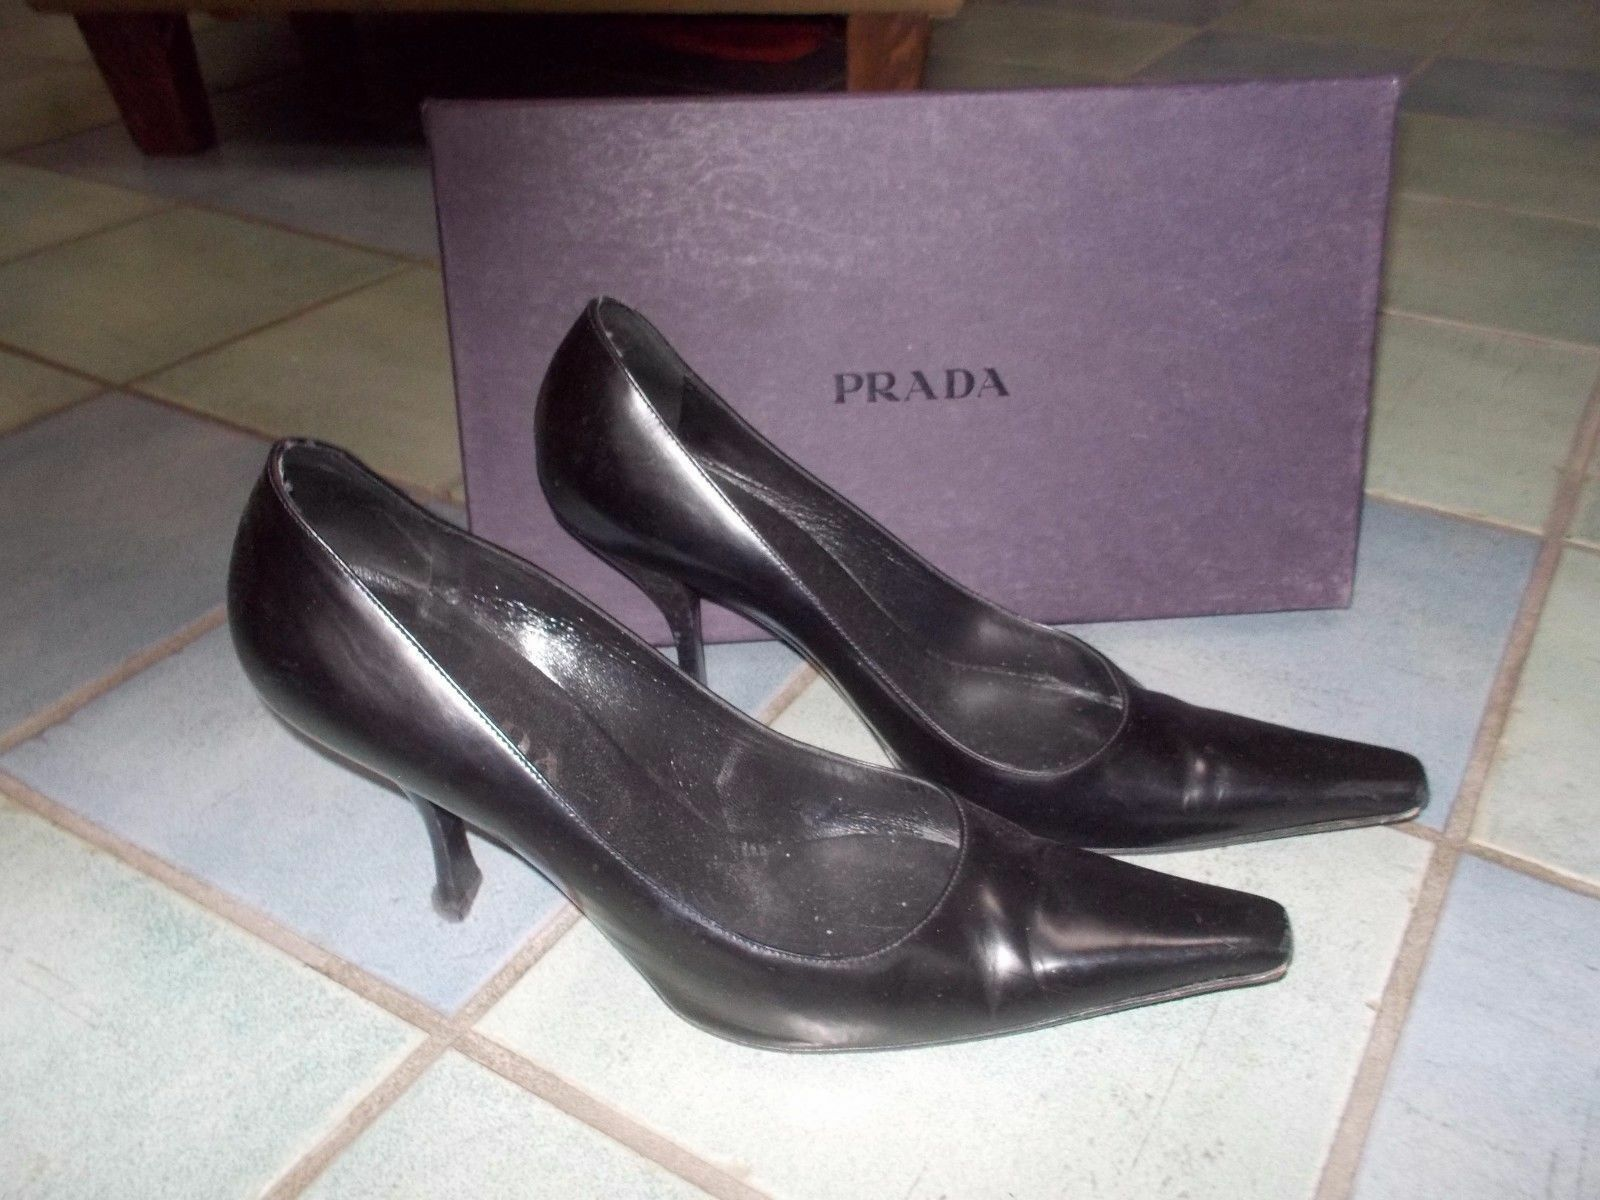 PRADA Pointed Toe Leather Pumps  37.5 7.5 $1,196